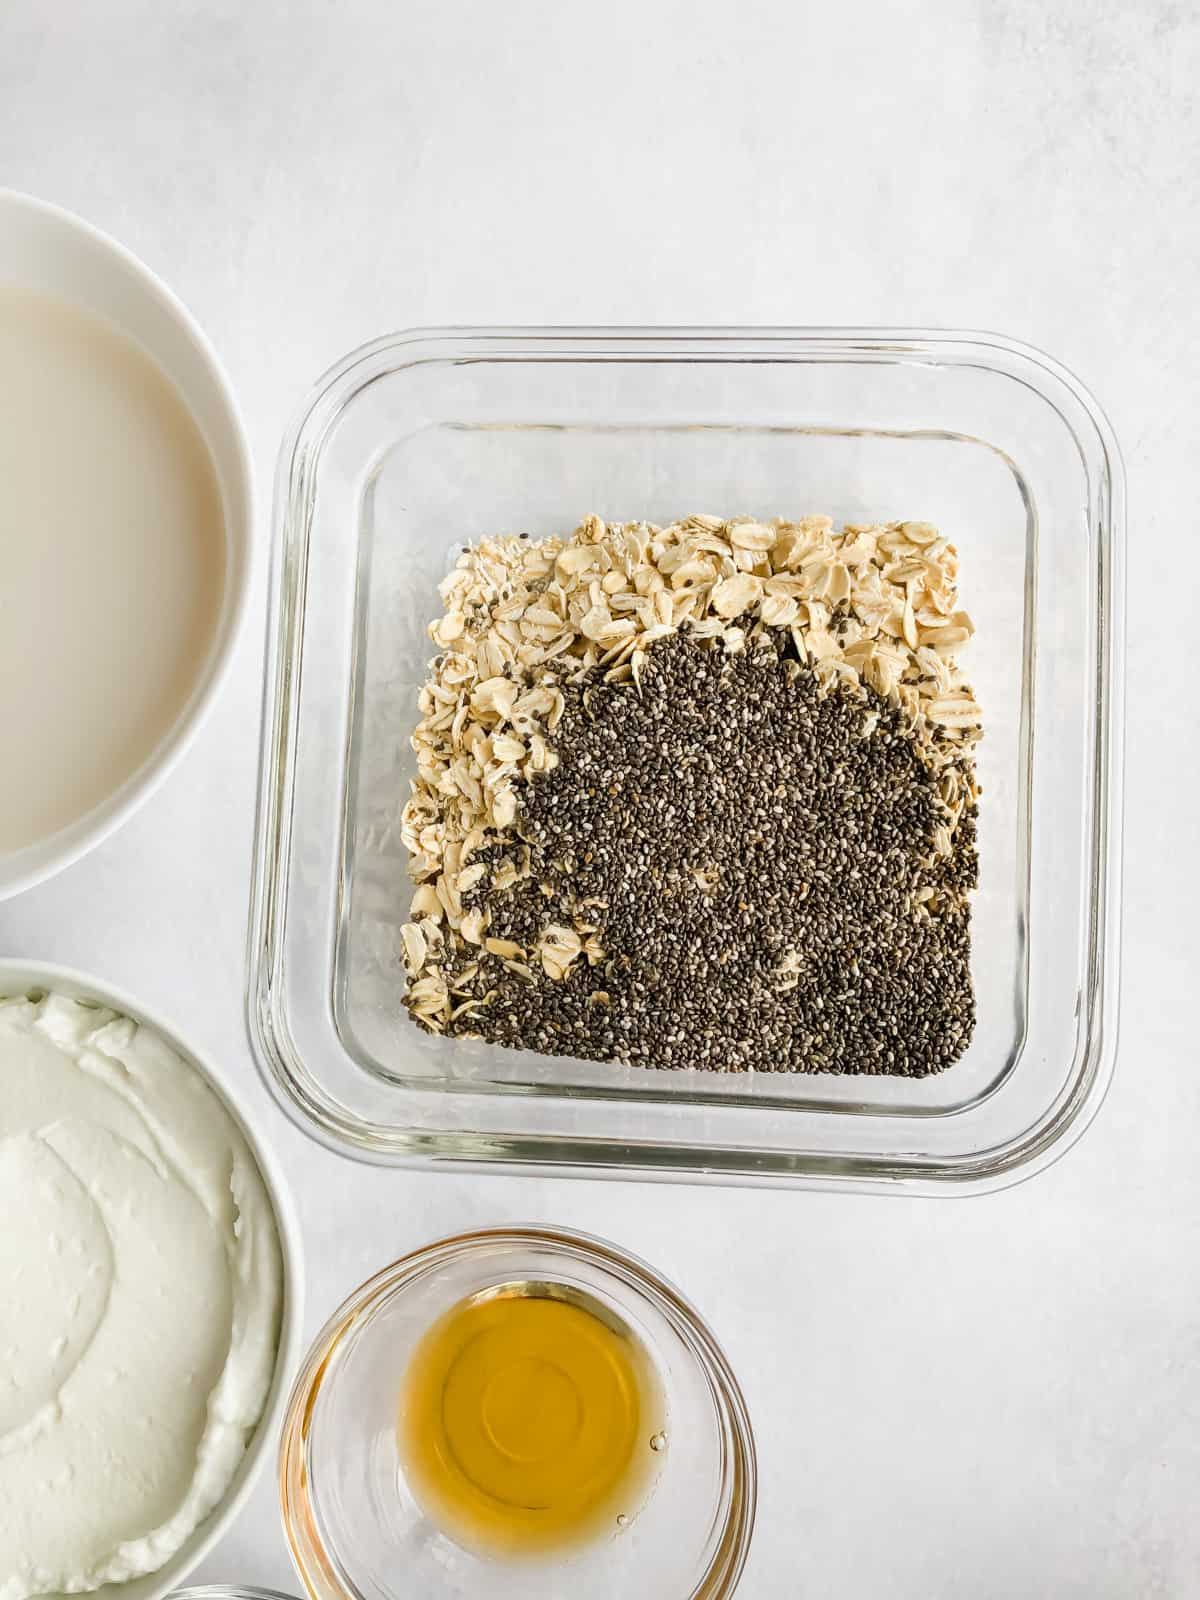 oats and chia seeds in a food storage container